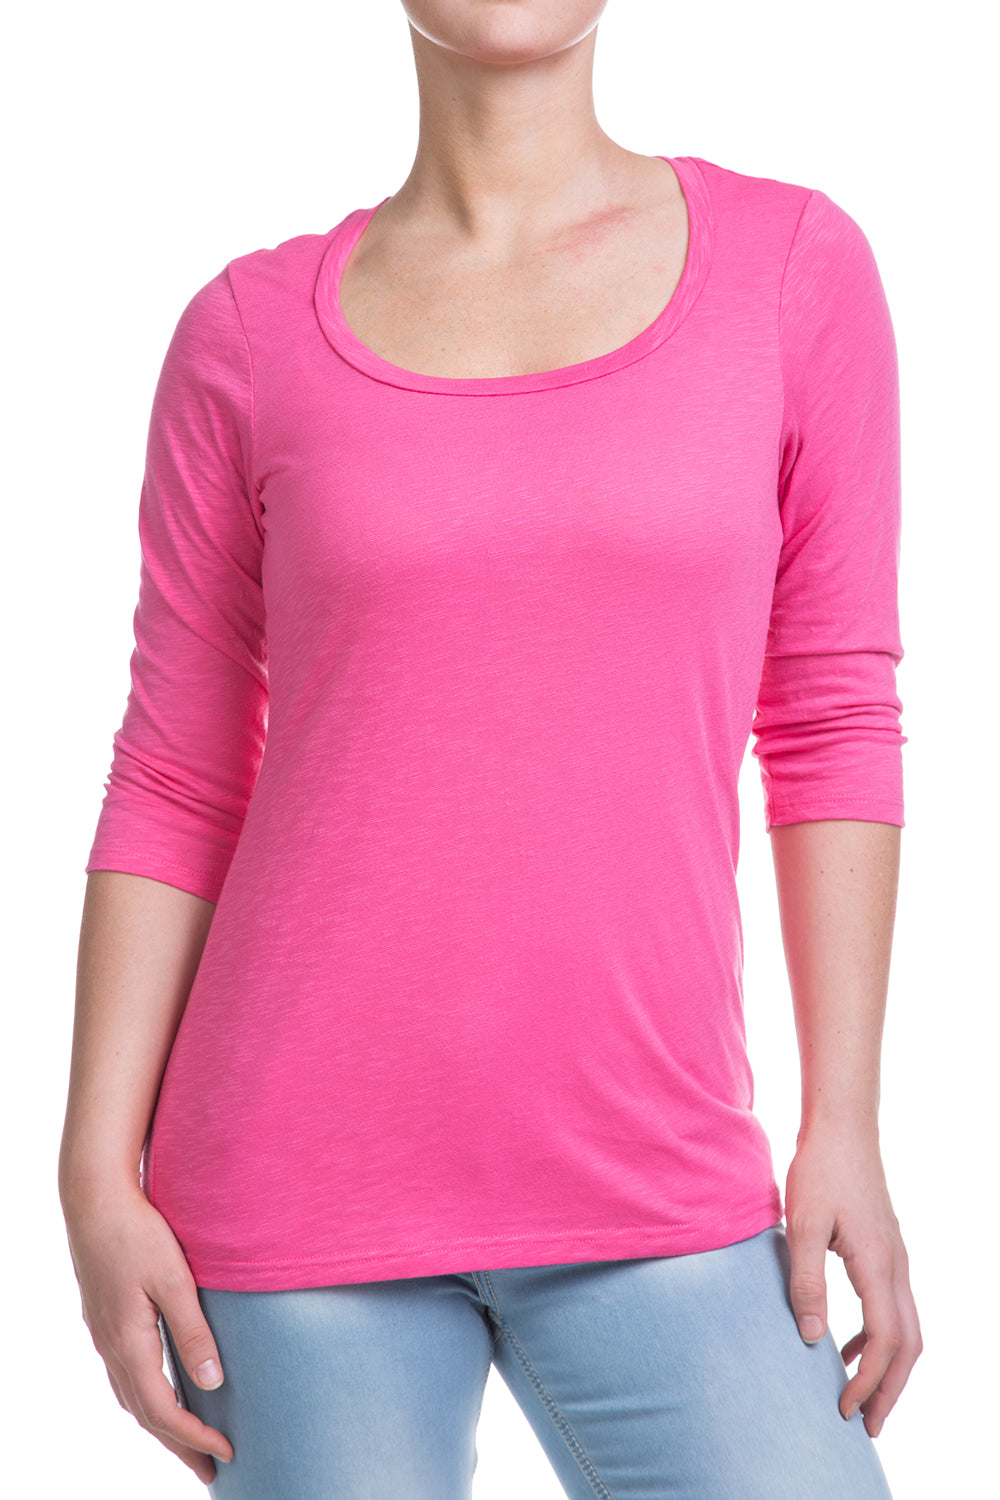 Type 1 Pink Frosting 3/4 Sleeve Cute-T